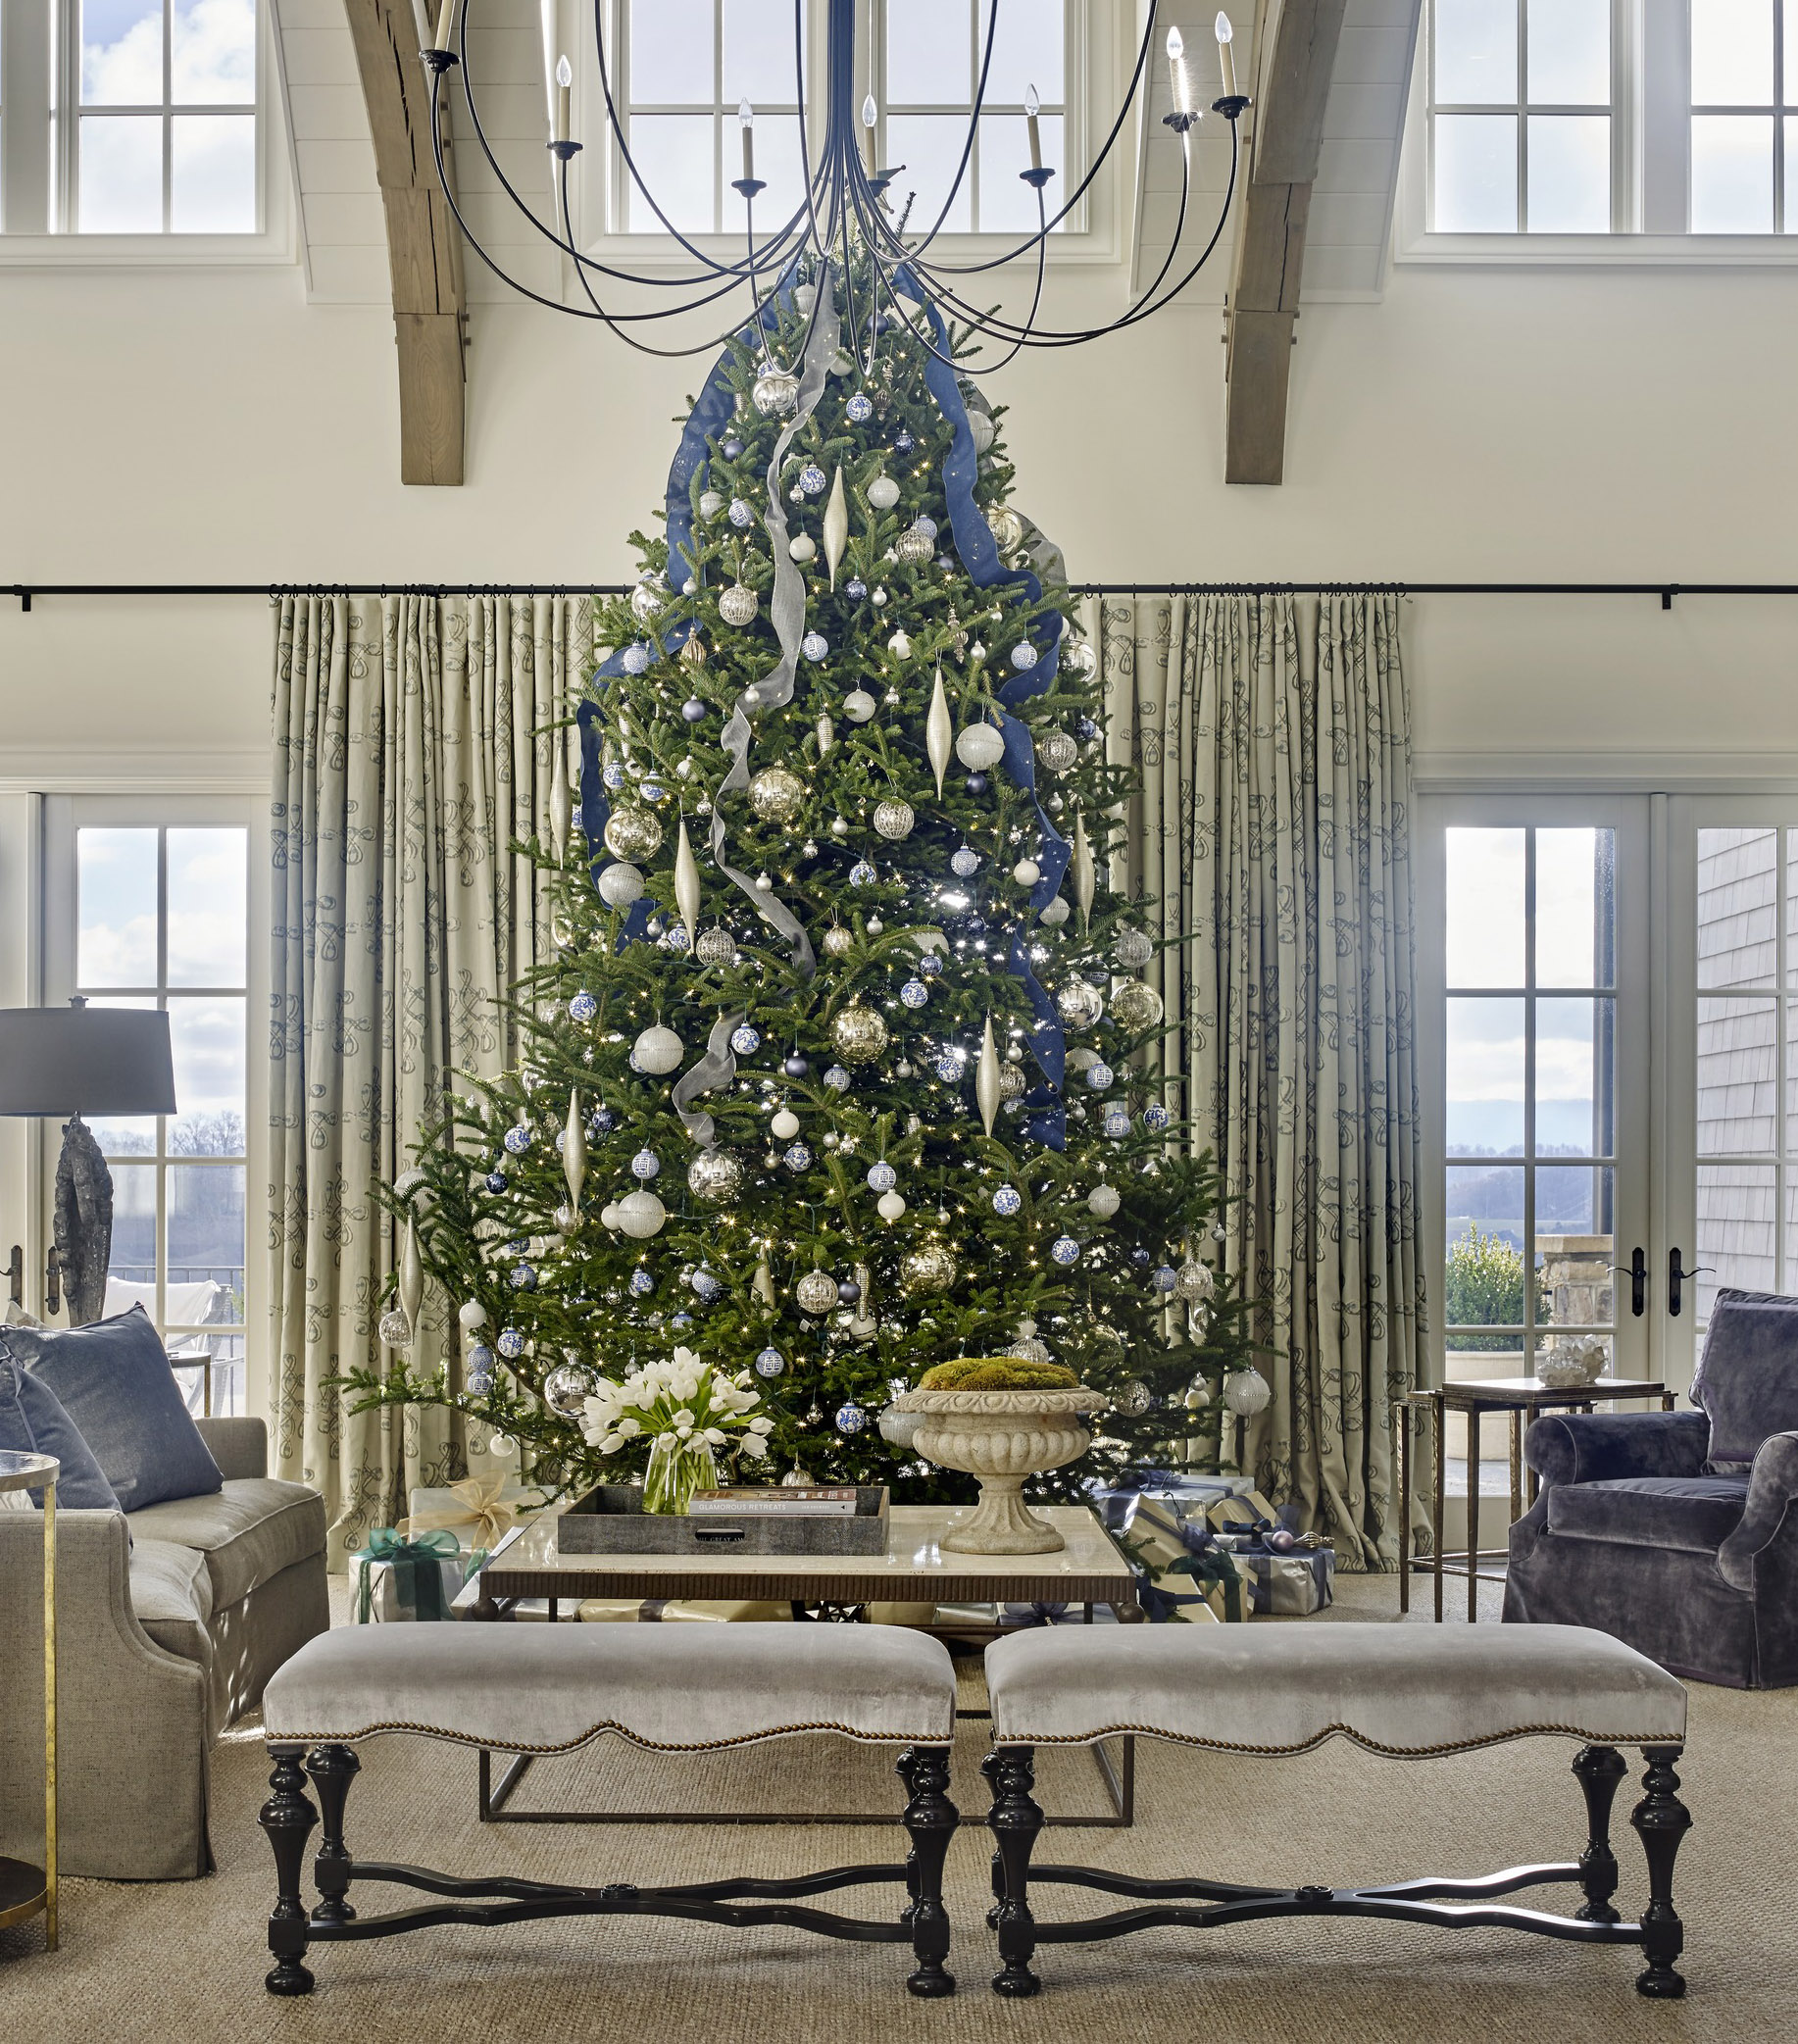 Color schemes for christmas trees - In A Trend We Re Seeing More And More The Tree Is Decorated In Colors Matching The Room S Year Round Palette